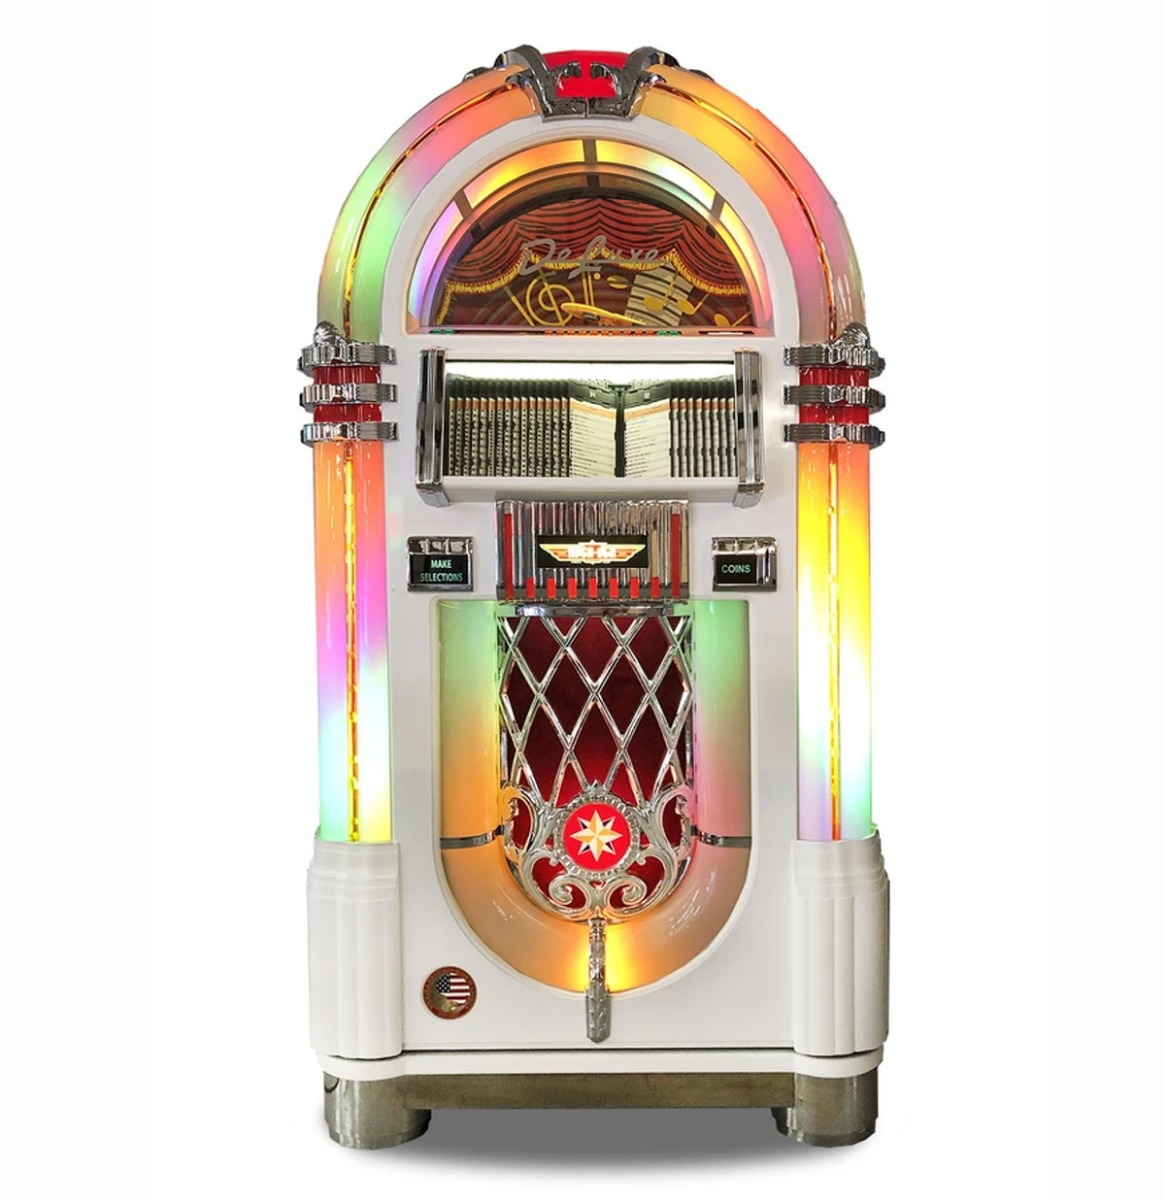 Rock-Ola Bubbler CD Jukebox - Glanzend Wit